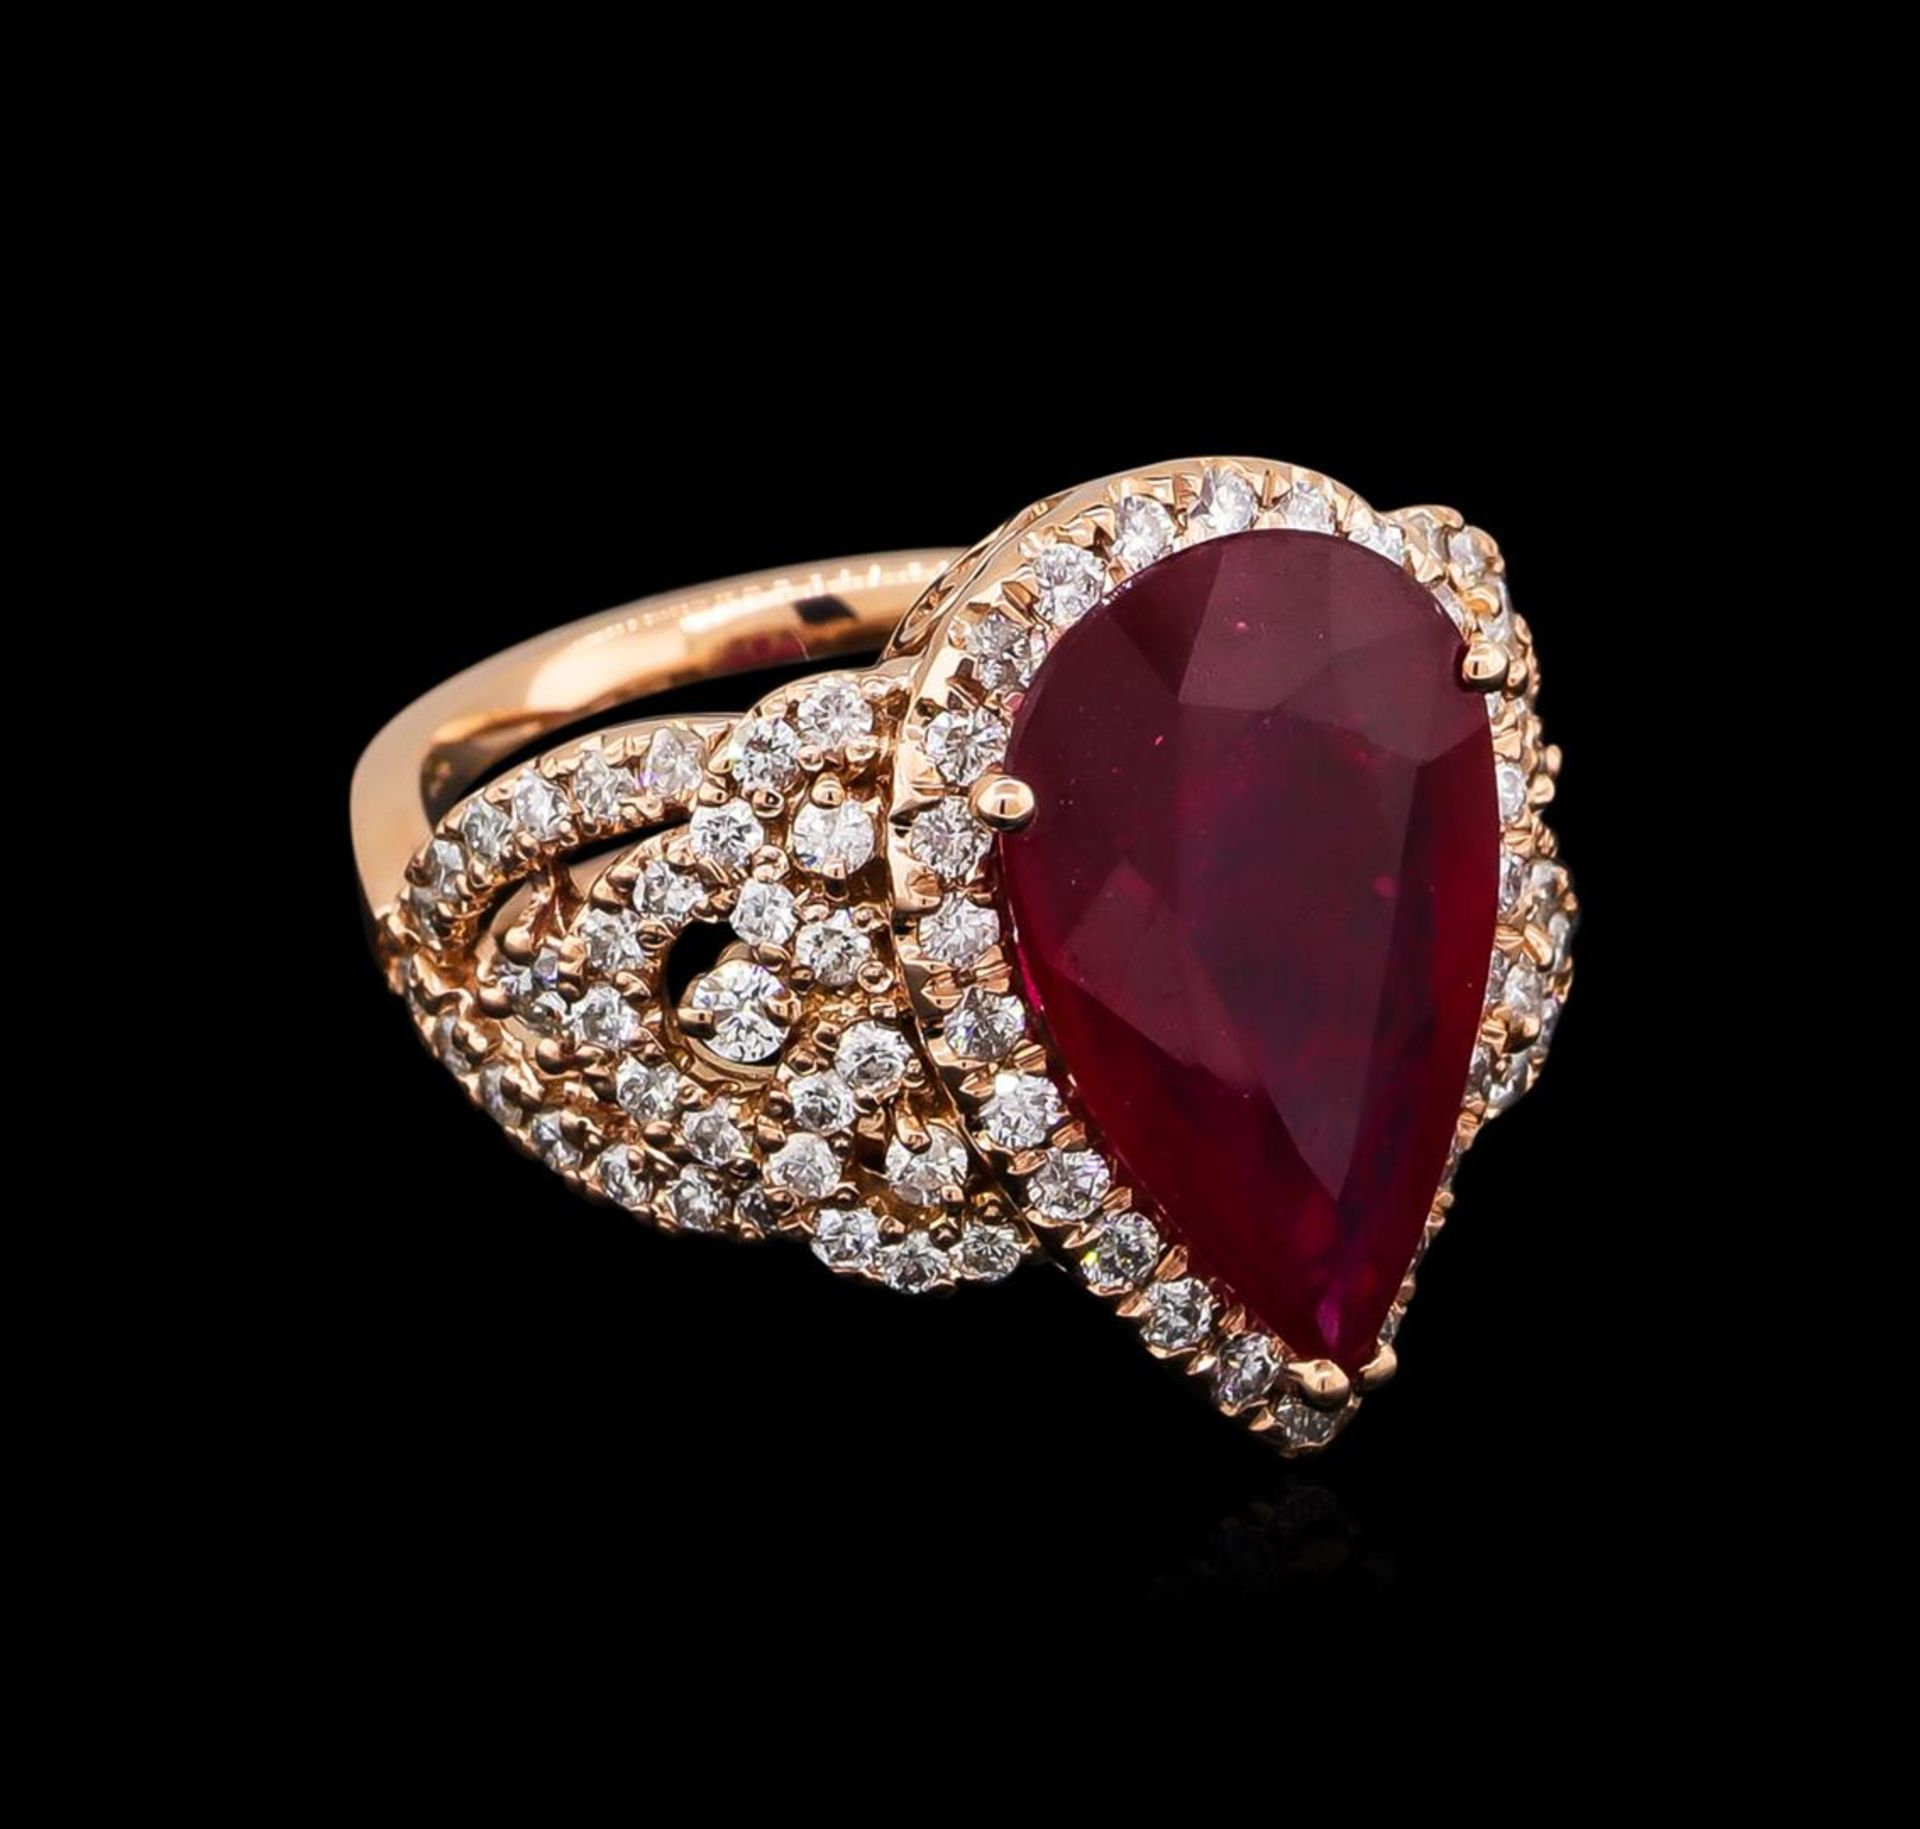 5.35ct Ruby and Diamond Ring - 14KT Rose Gold